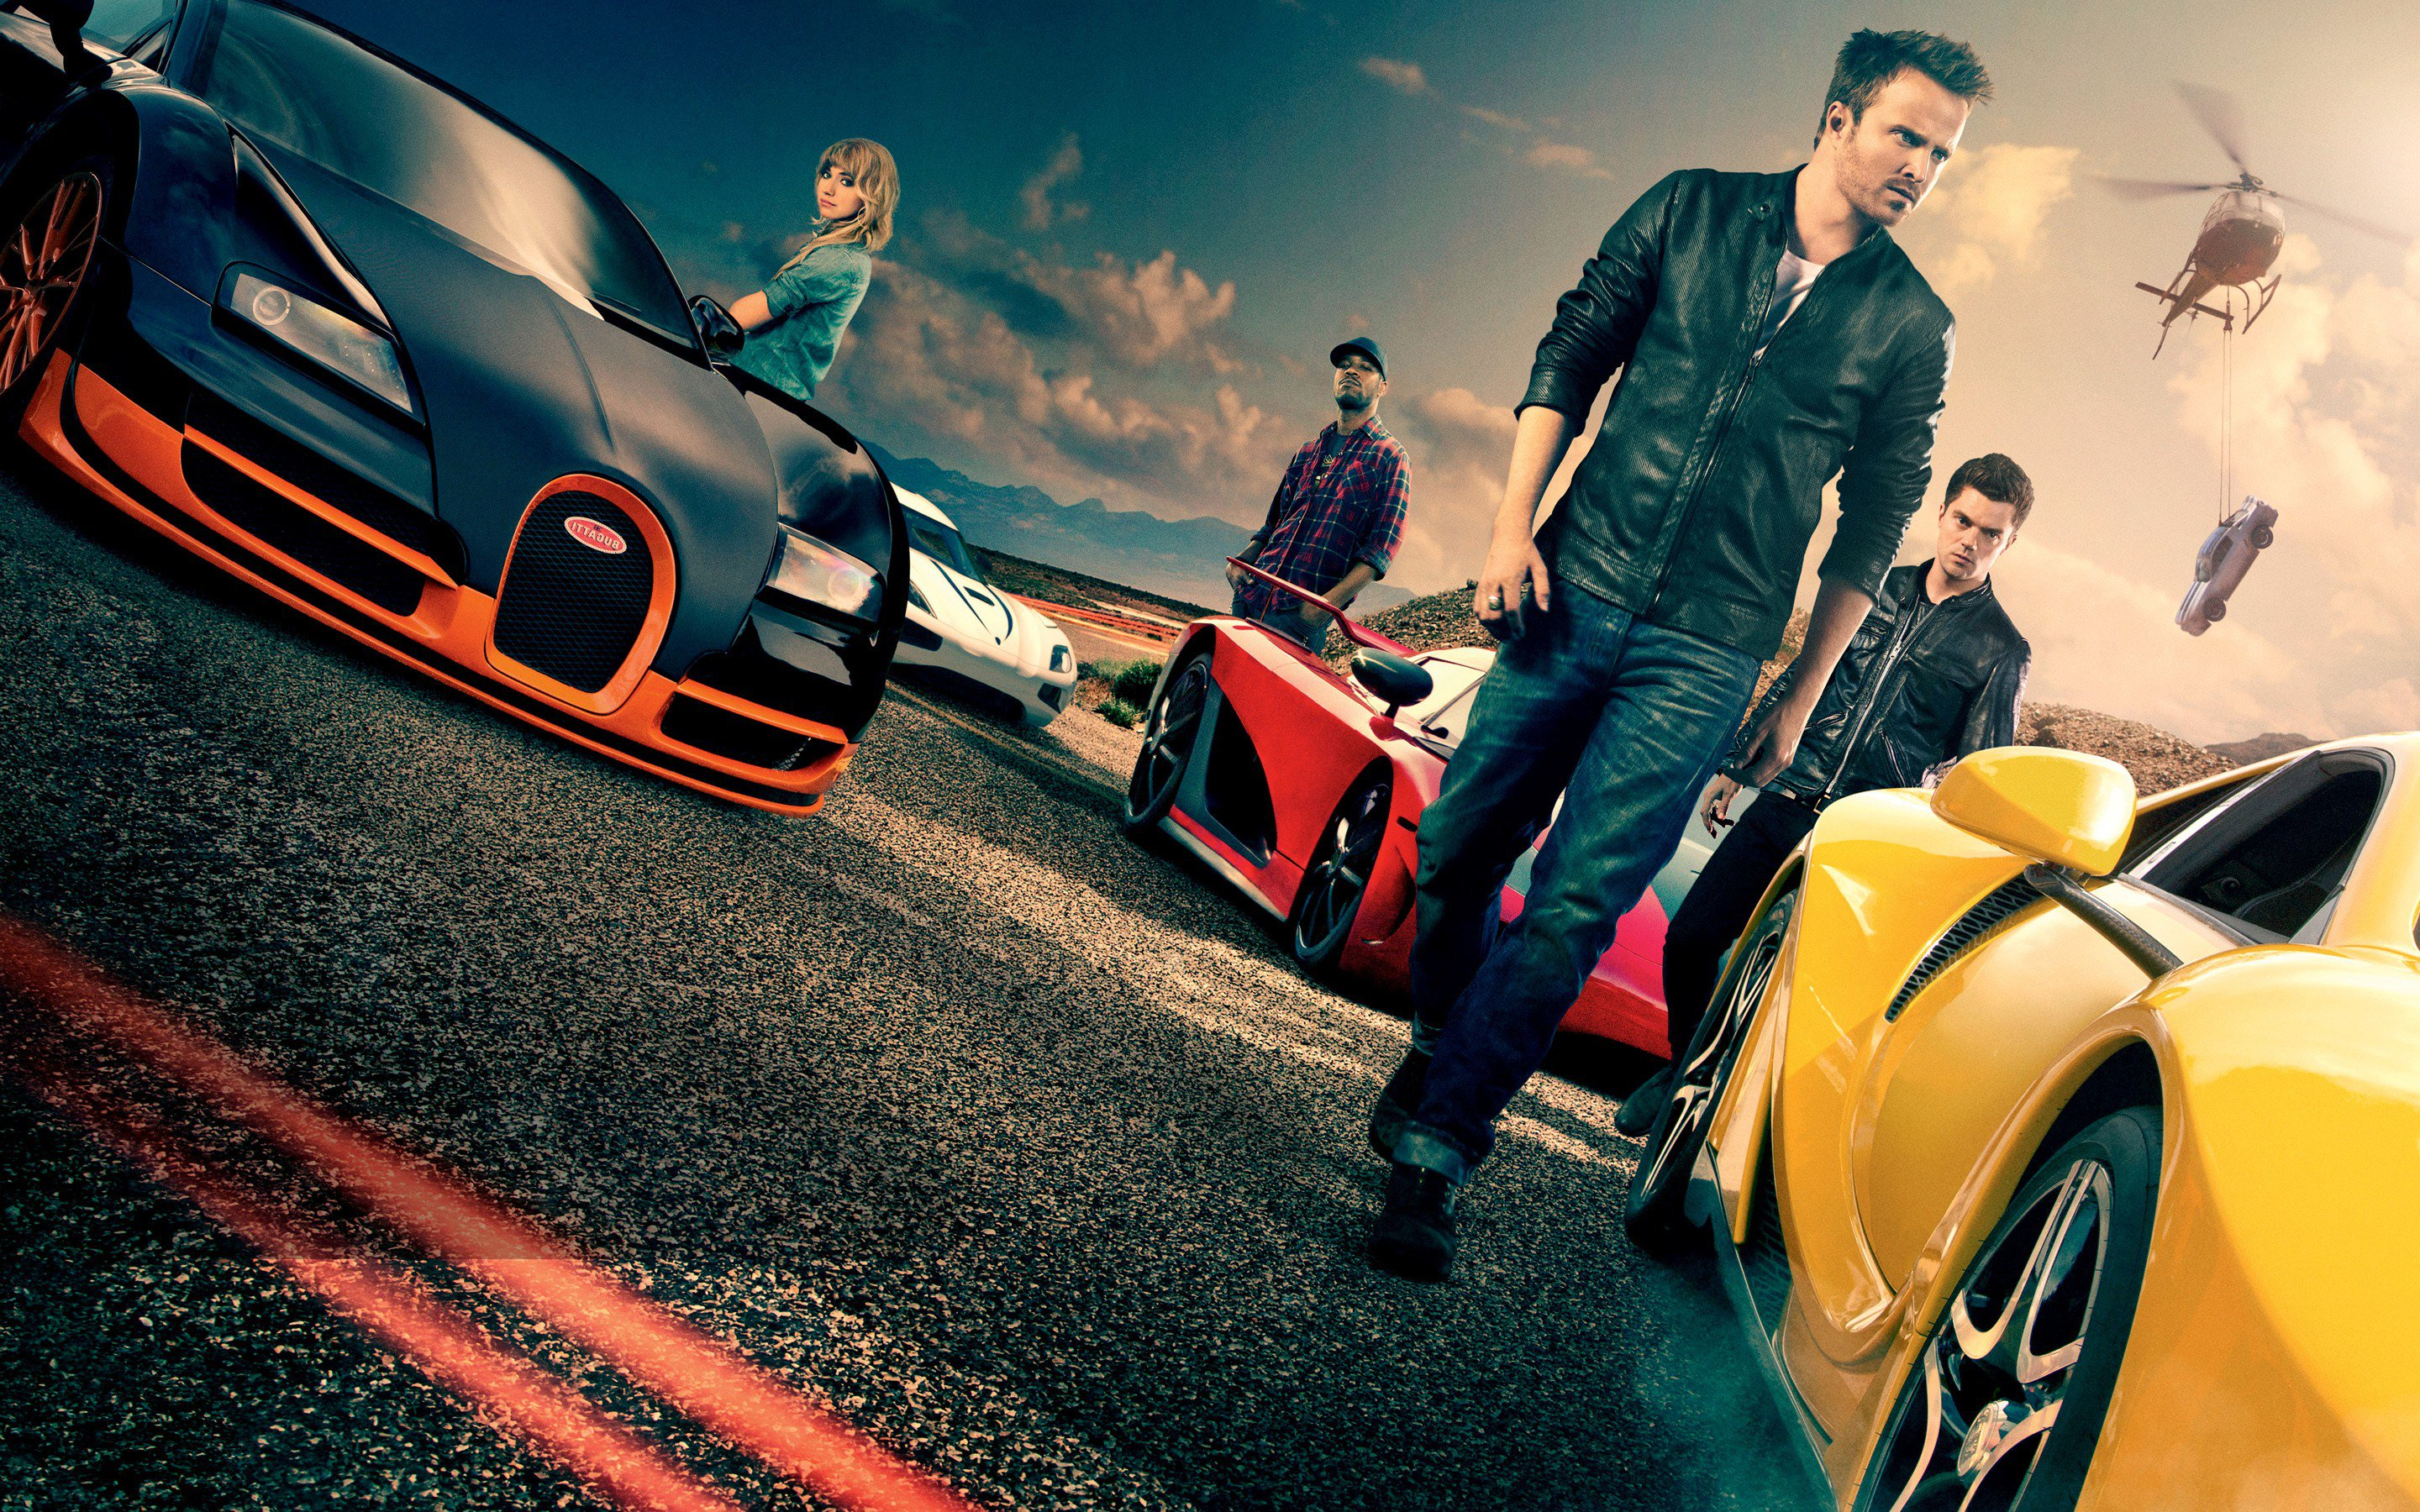 Need For Speed Movie Hd Movies 4k Wallpapers Images